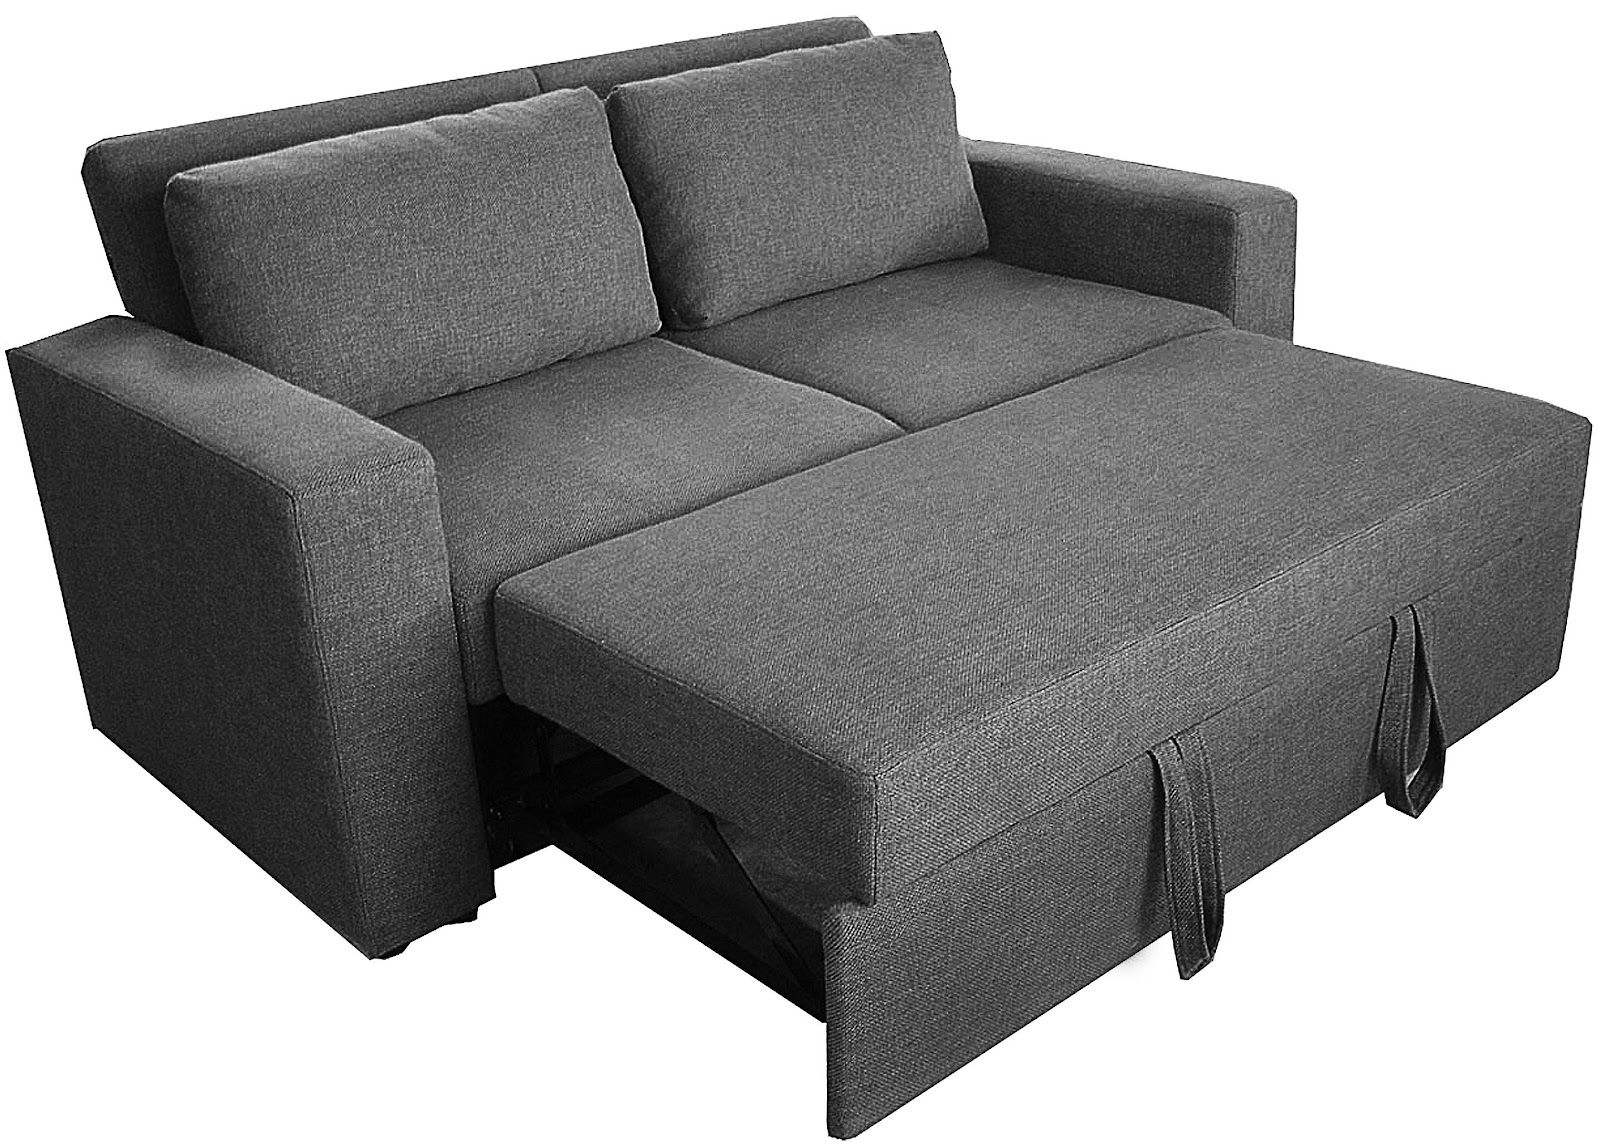 Bed Sectional Sofa With Pull Out Bed Sofa Bed Pull Out Sofa Pull Out .